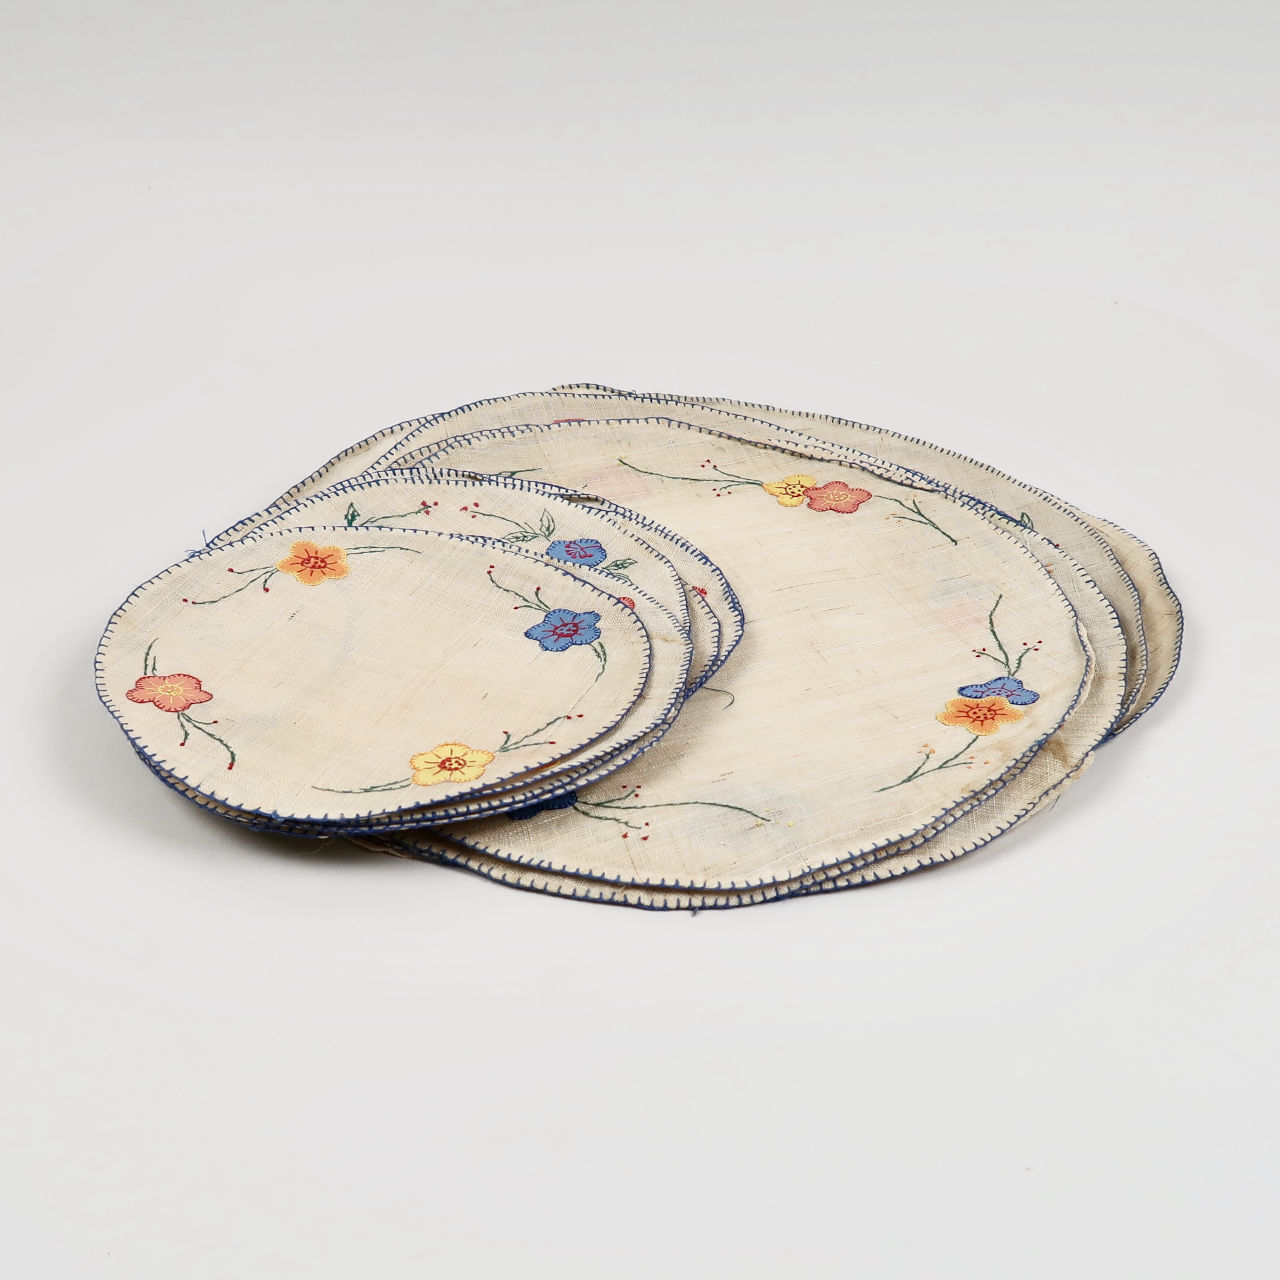 Embroidered Placemats and Coasters - Set of 12